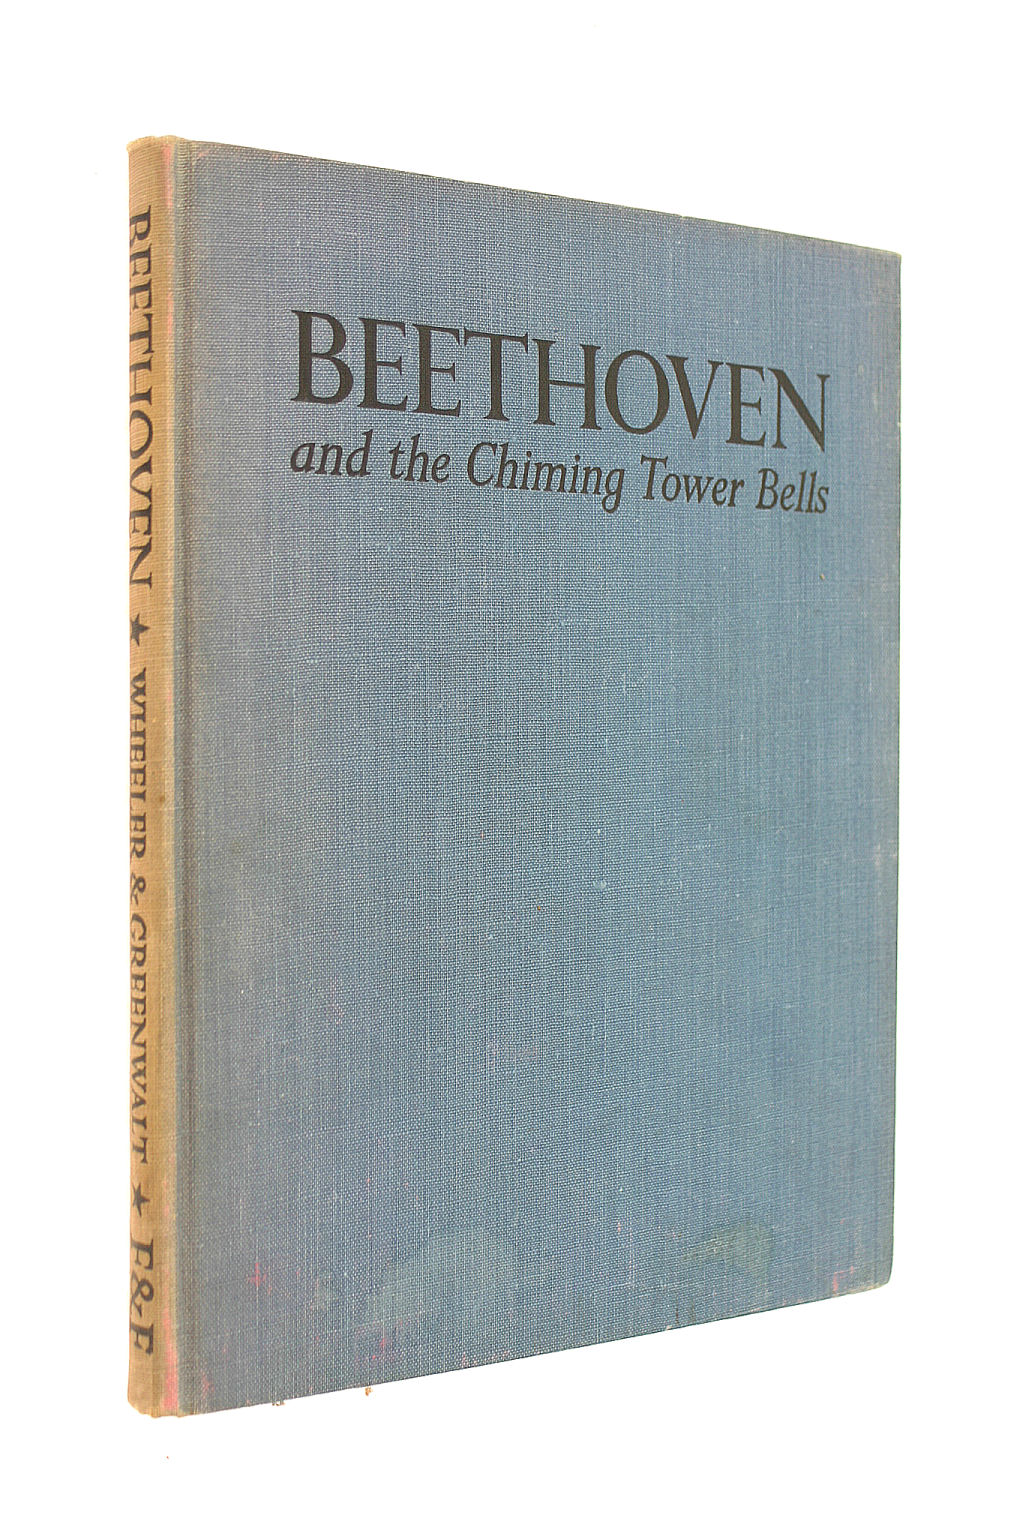 Image for Ludwig Beethoven and the Chiming Tower Bells